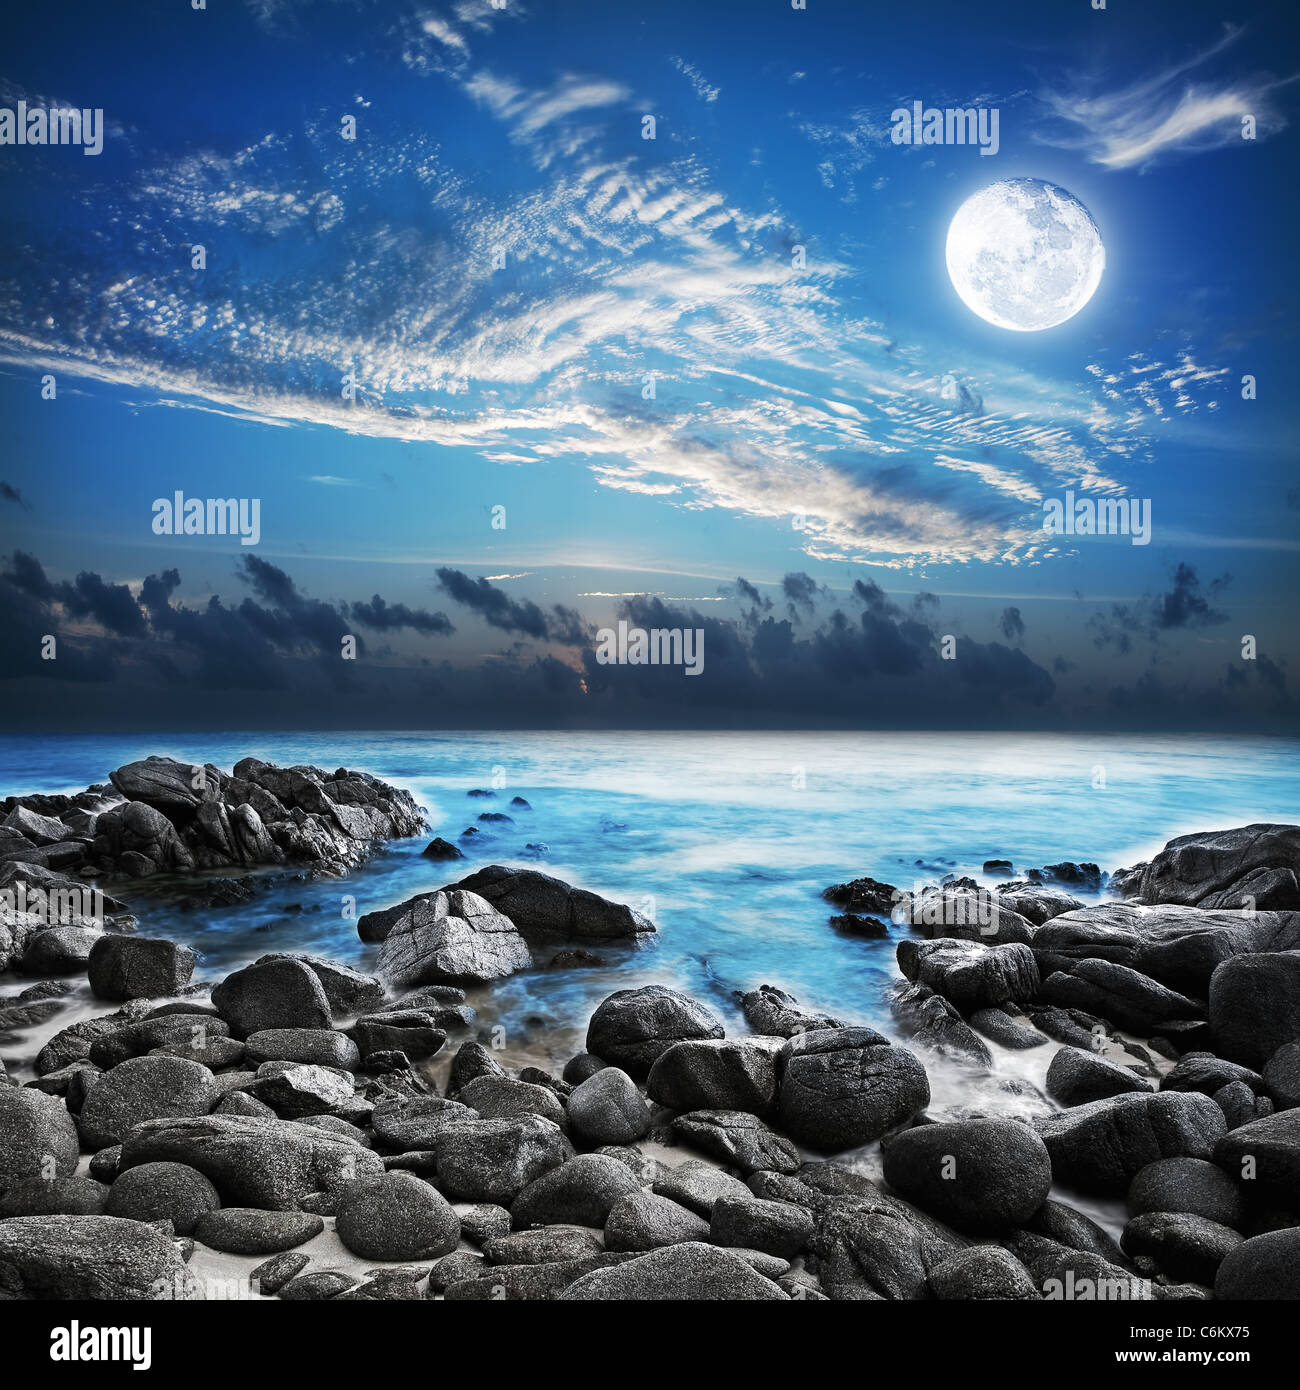 Full moon over the tropical bay. Long exposure shot. - Stock Image